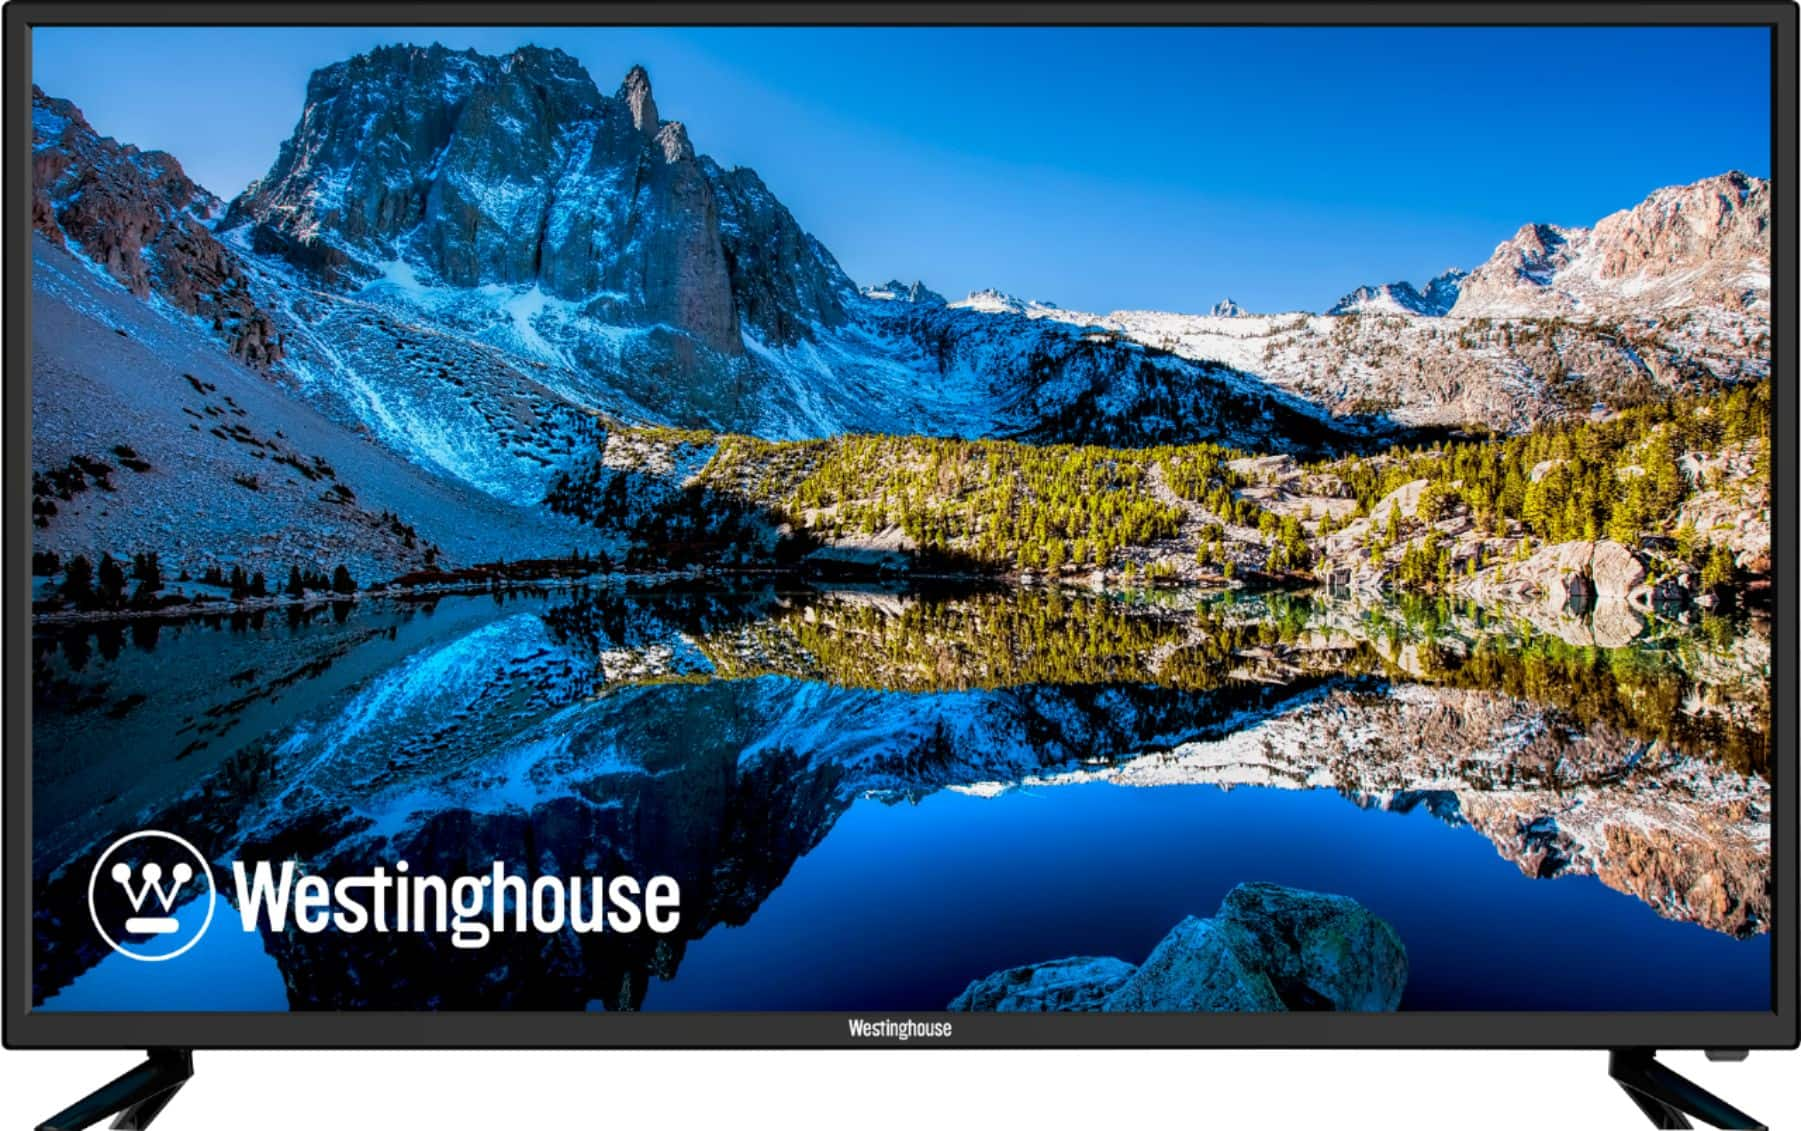 Westinghouse 49-inch 1080p HDTV @ Best Buy FS $150